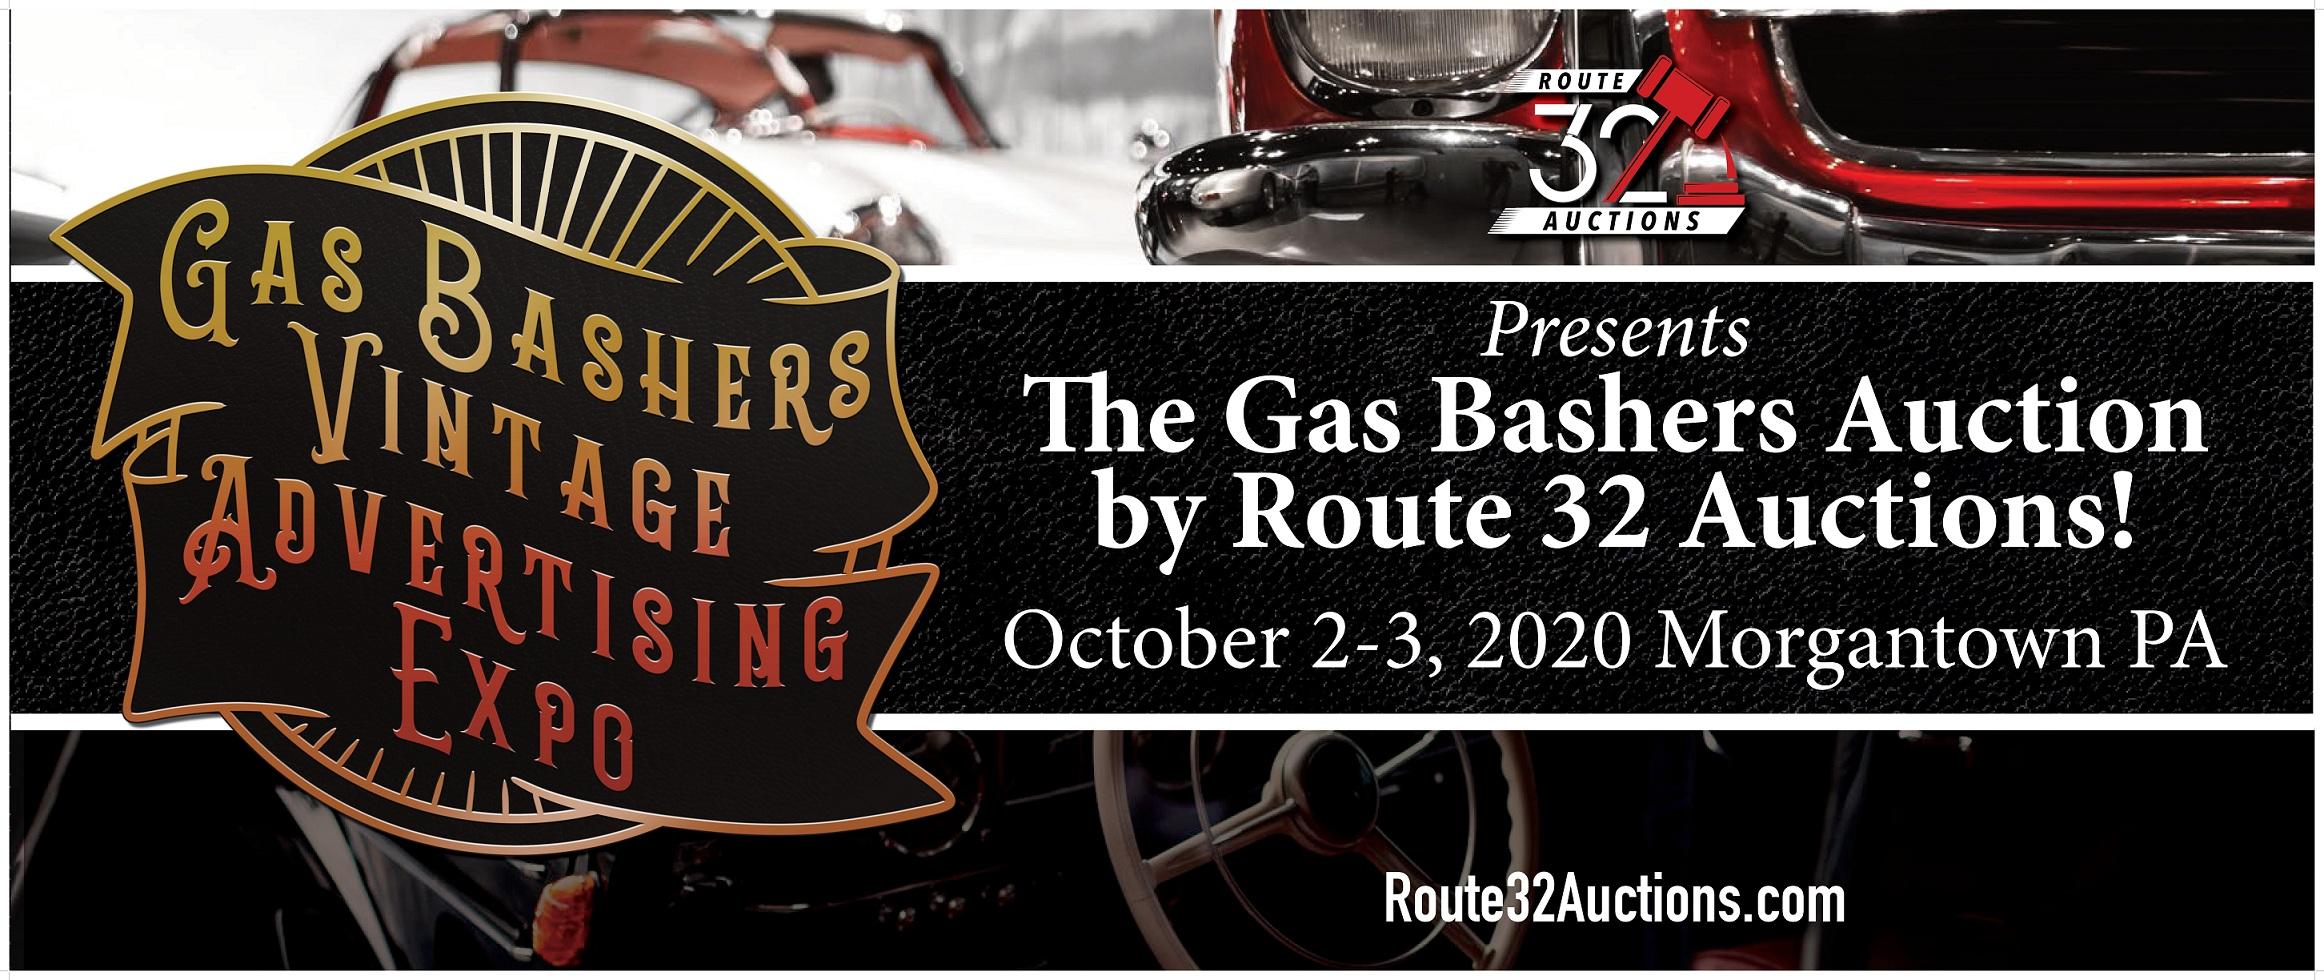 Gas Bashers Auction